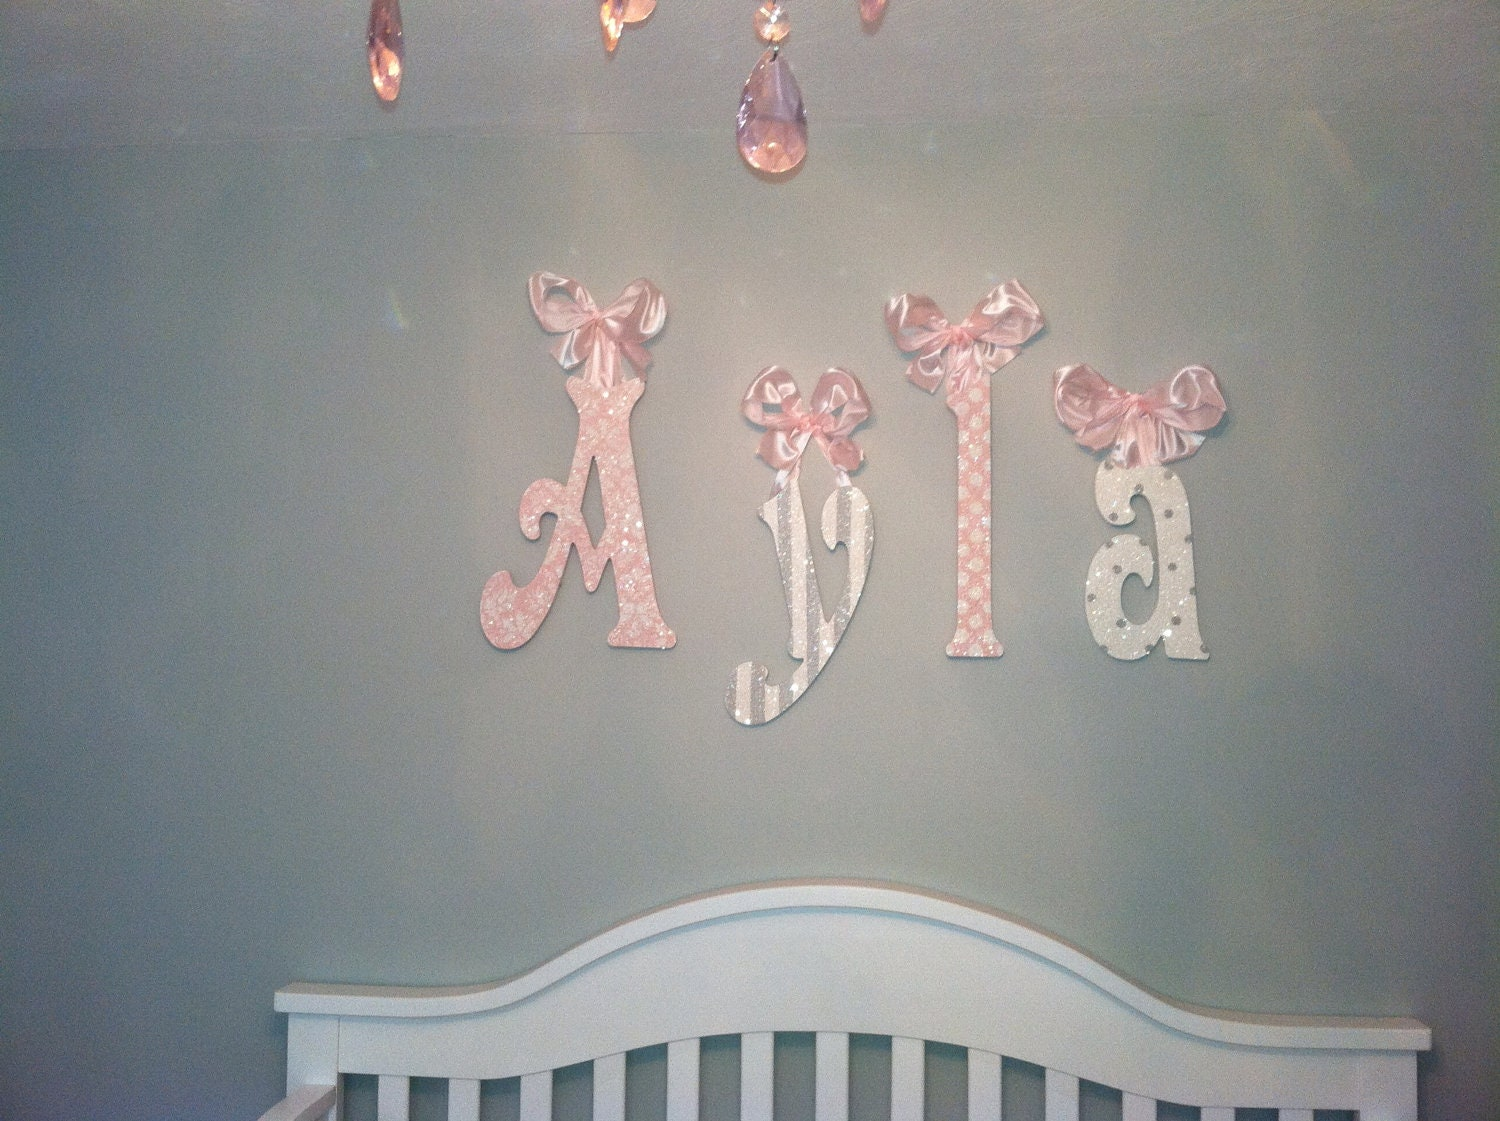 Wall Letter Decor decorative wall letters-glittery sparkly-pink and gray